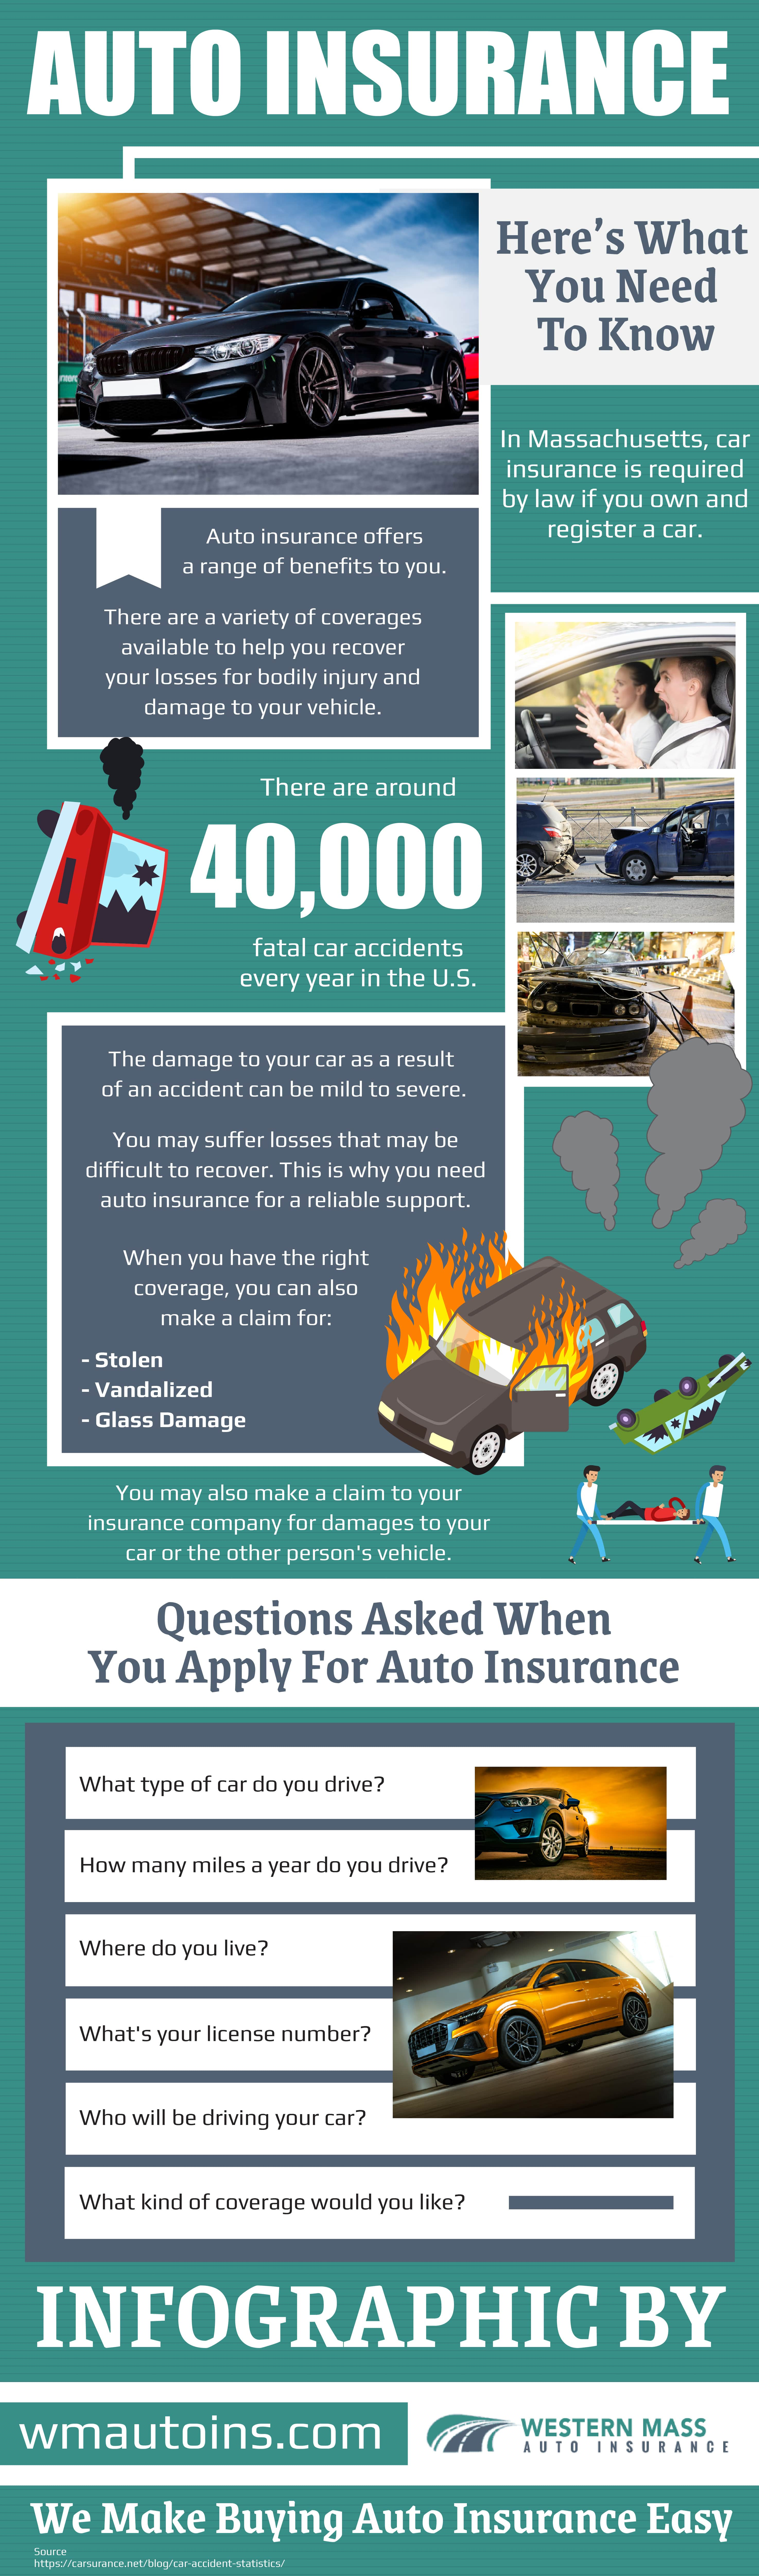 Auto Insurance: Here's What You Need To Know